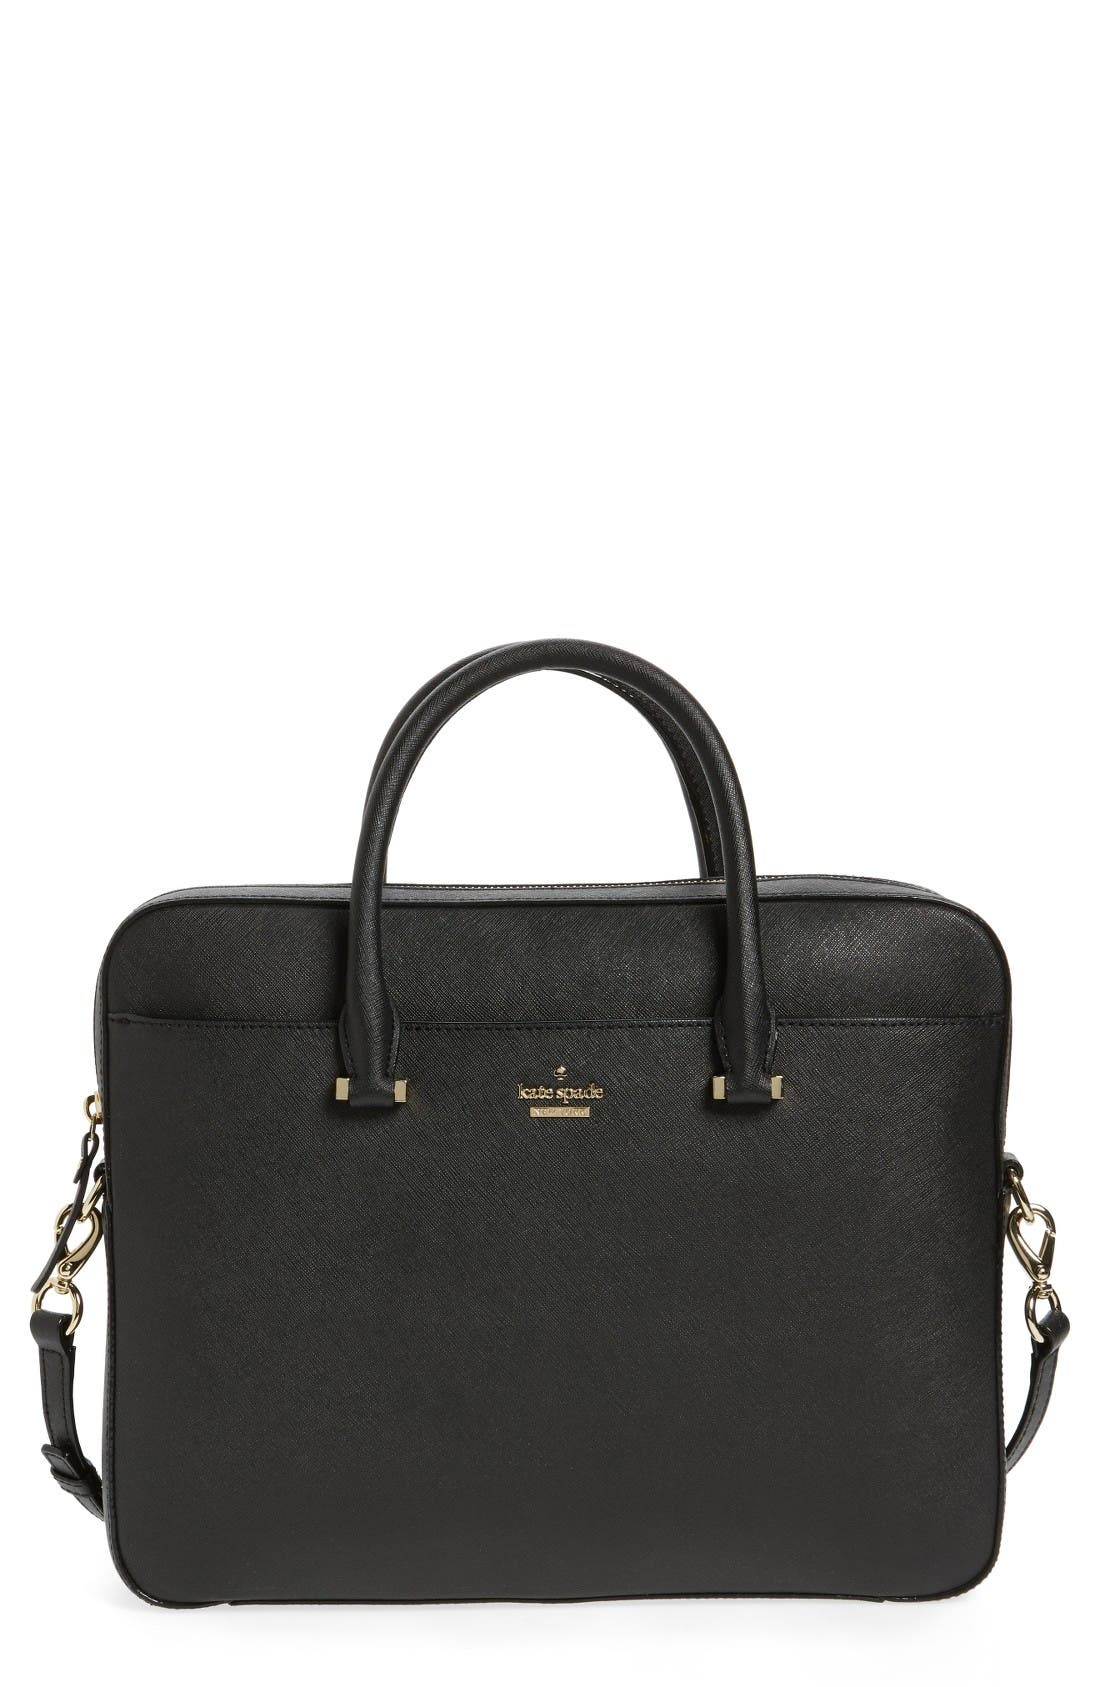 Main Image - kate spade new york saffiano leather 13 inch laptop bag